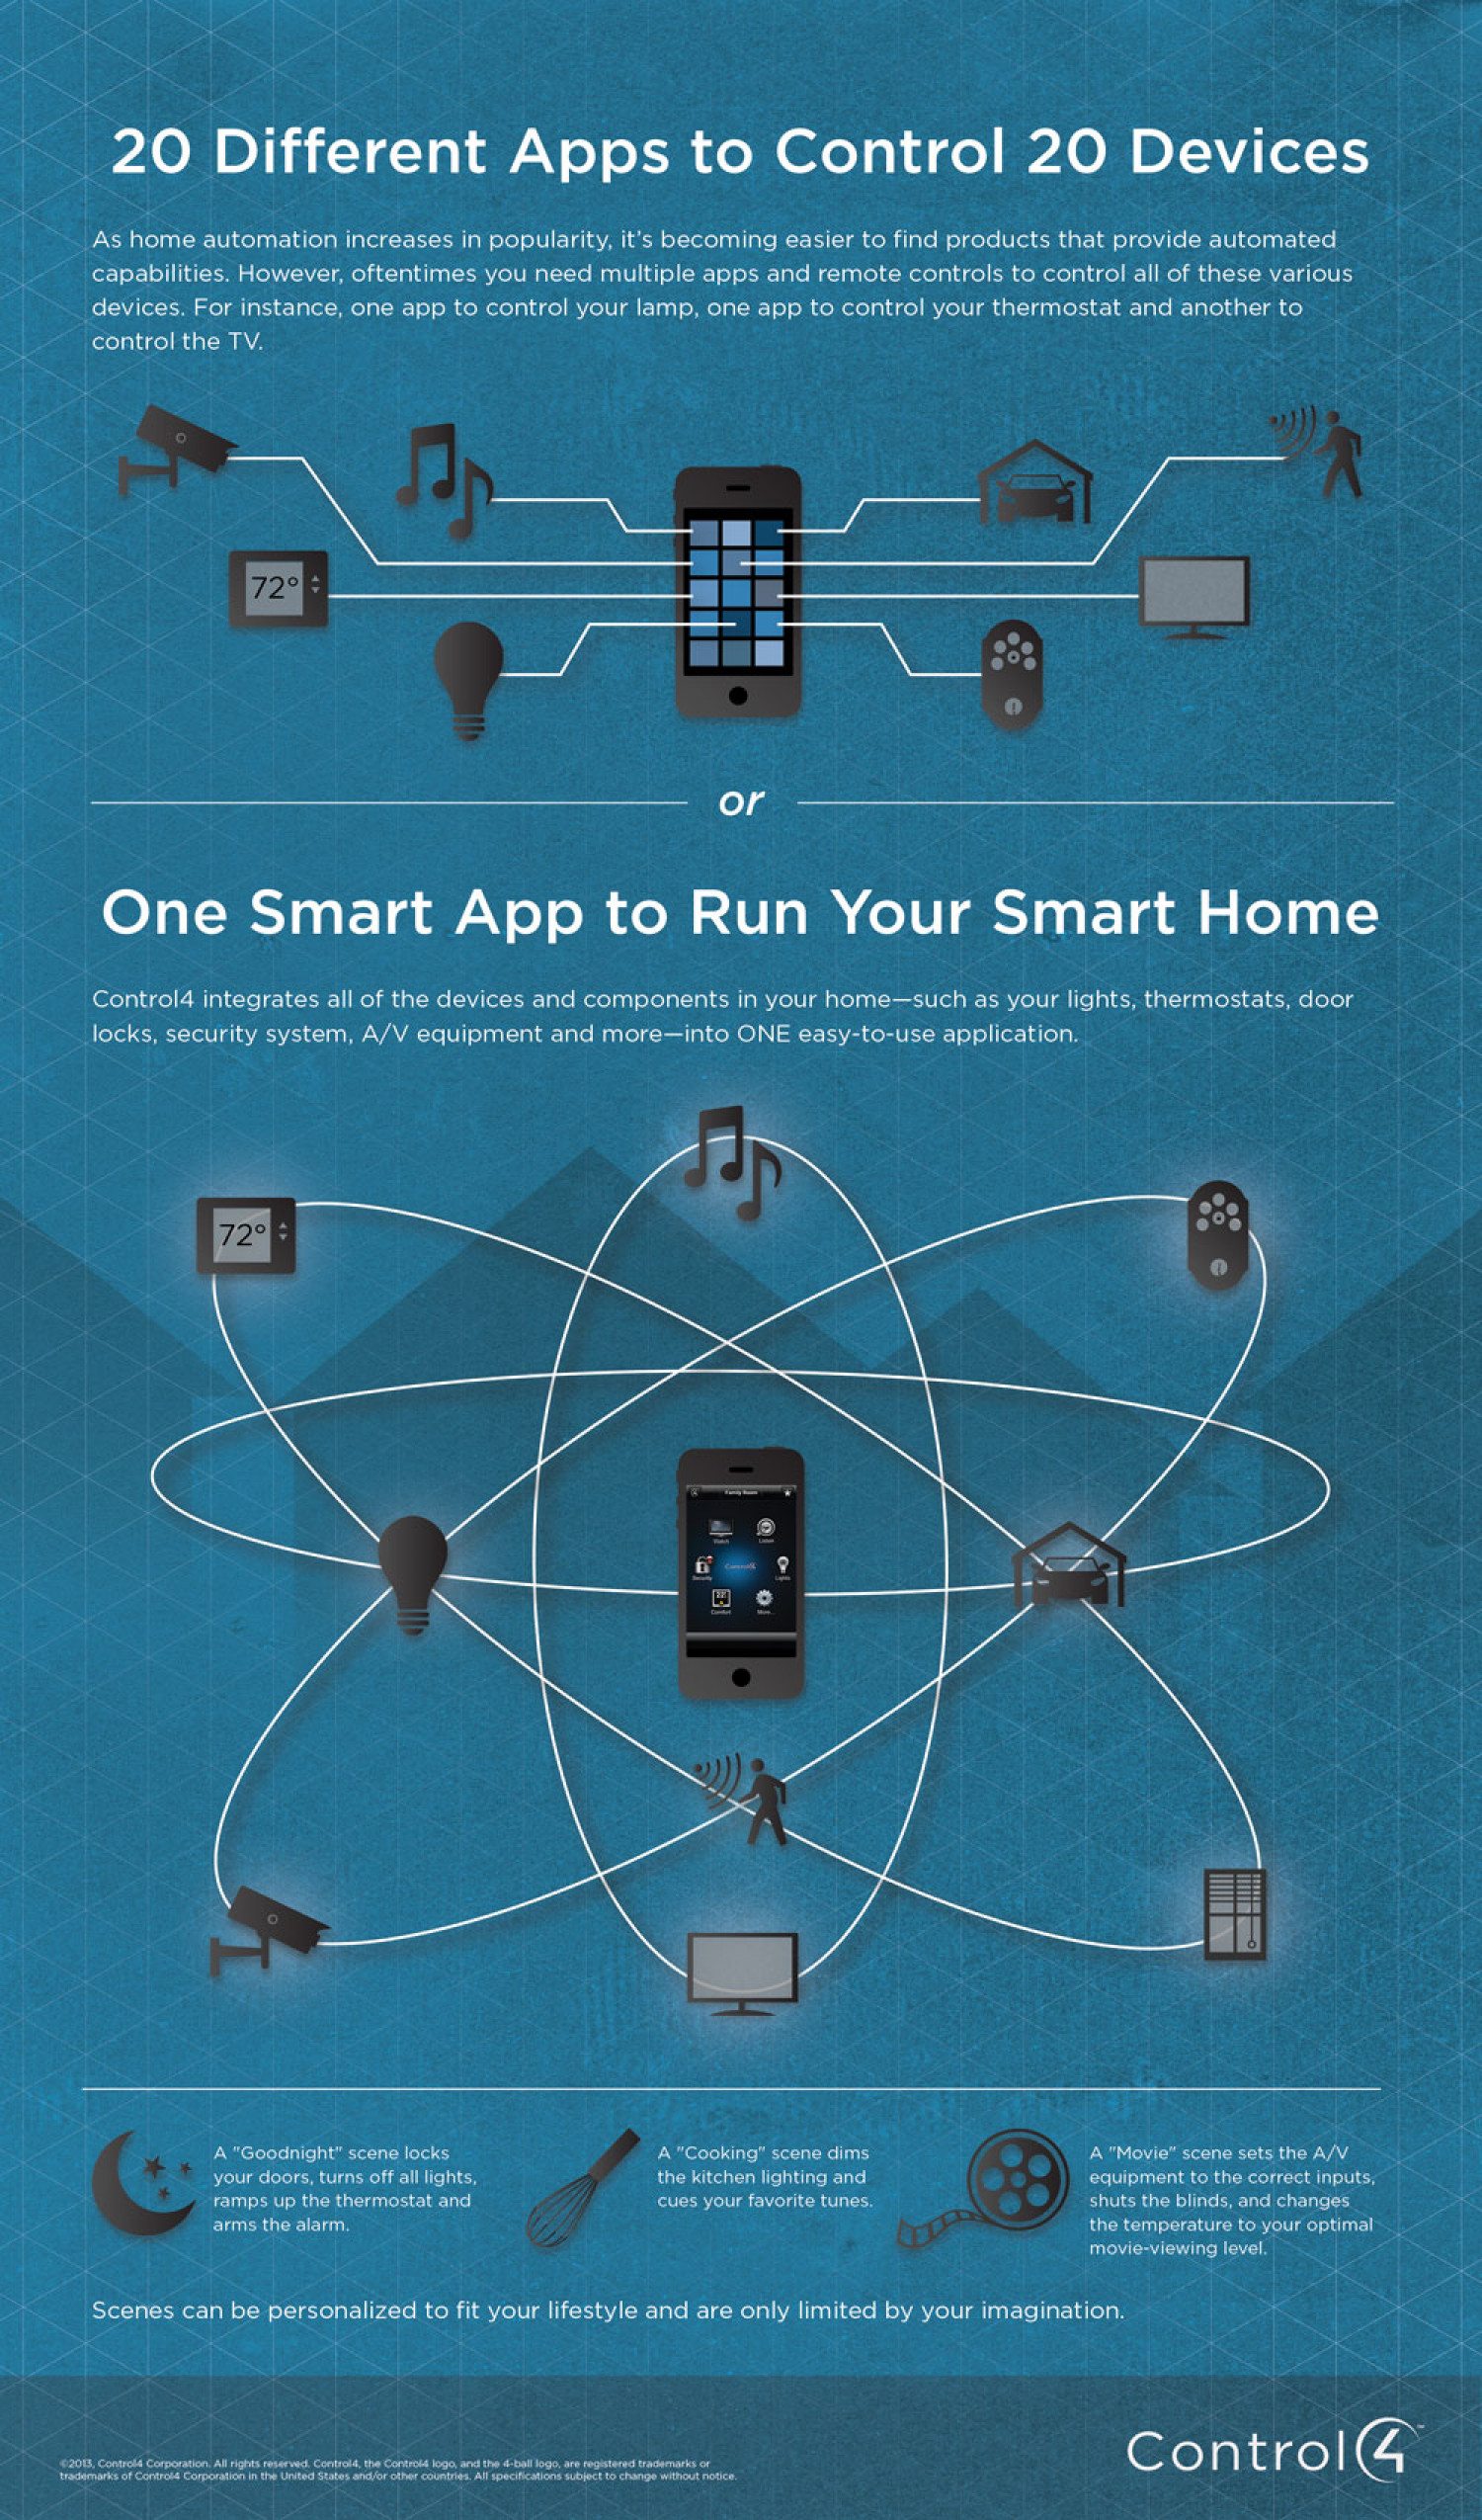 One Smart App for Your Smart Home | Visual.ly